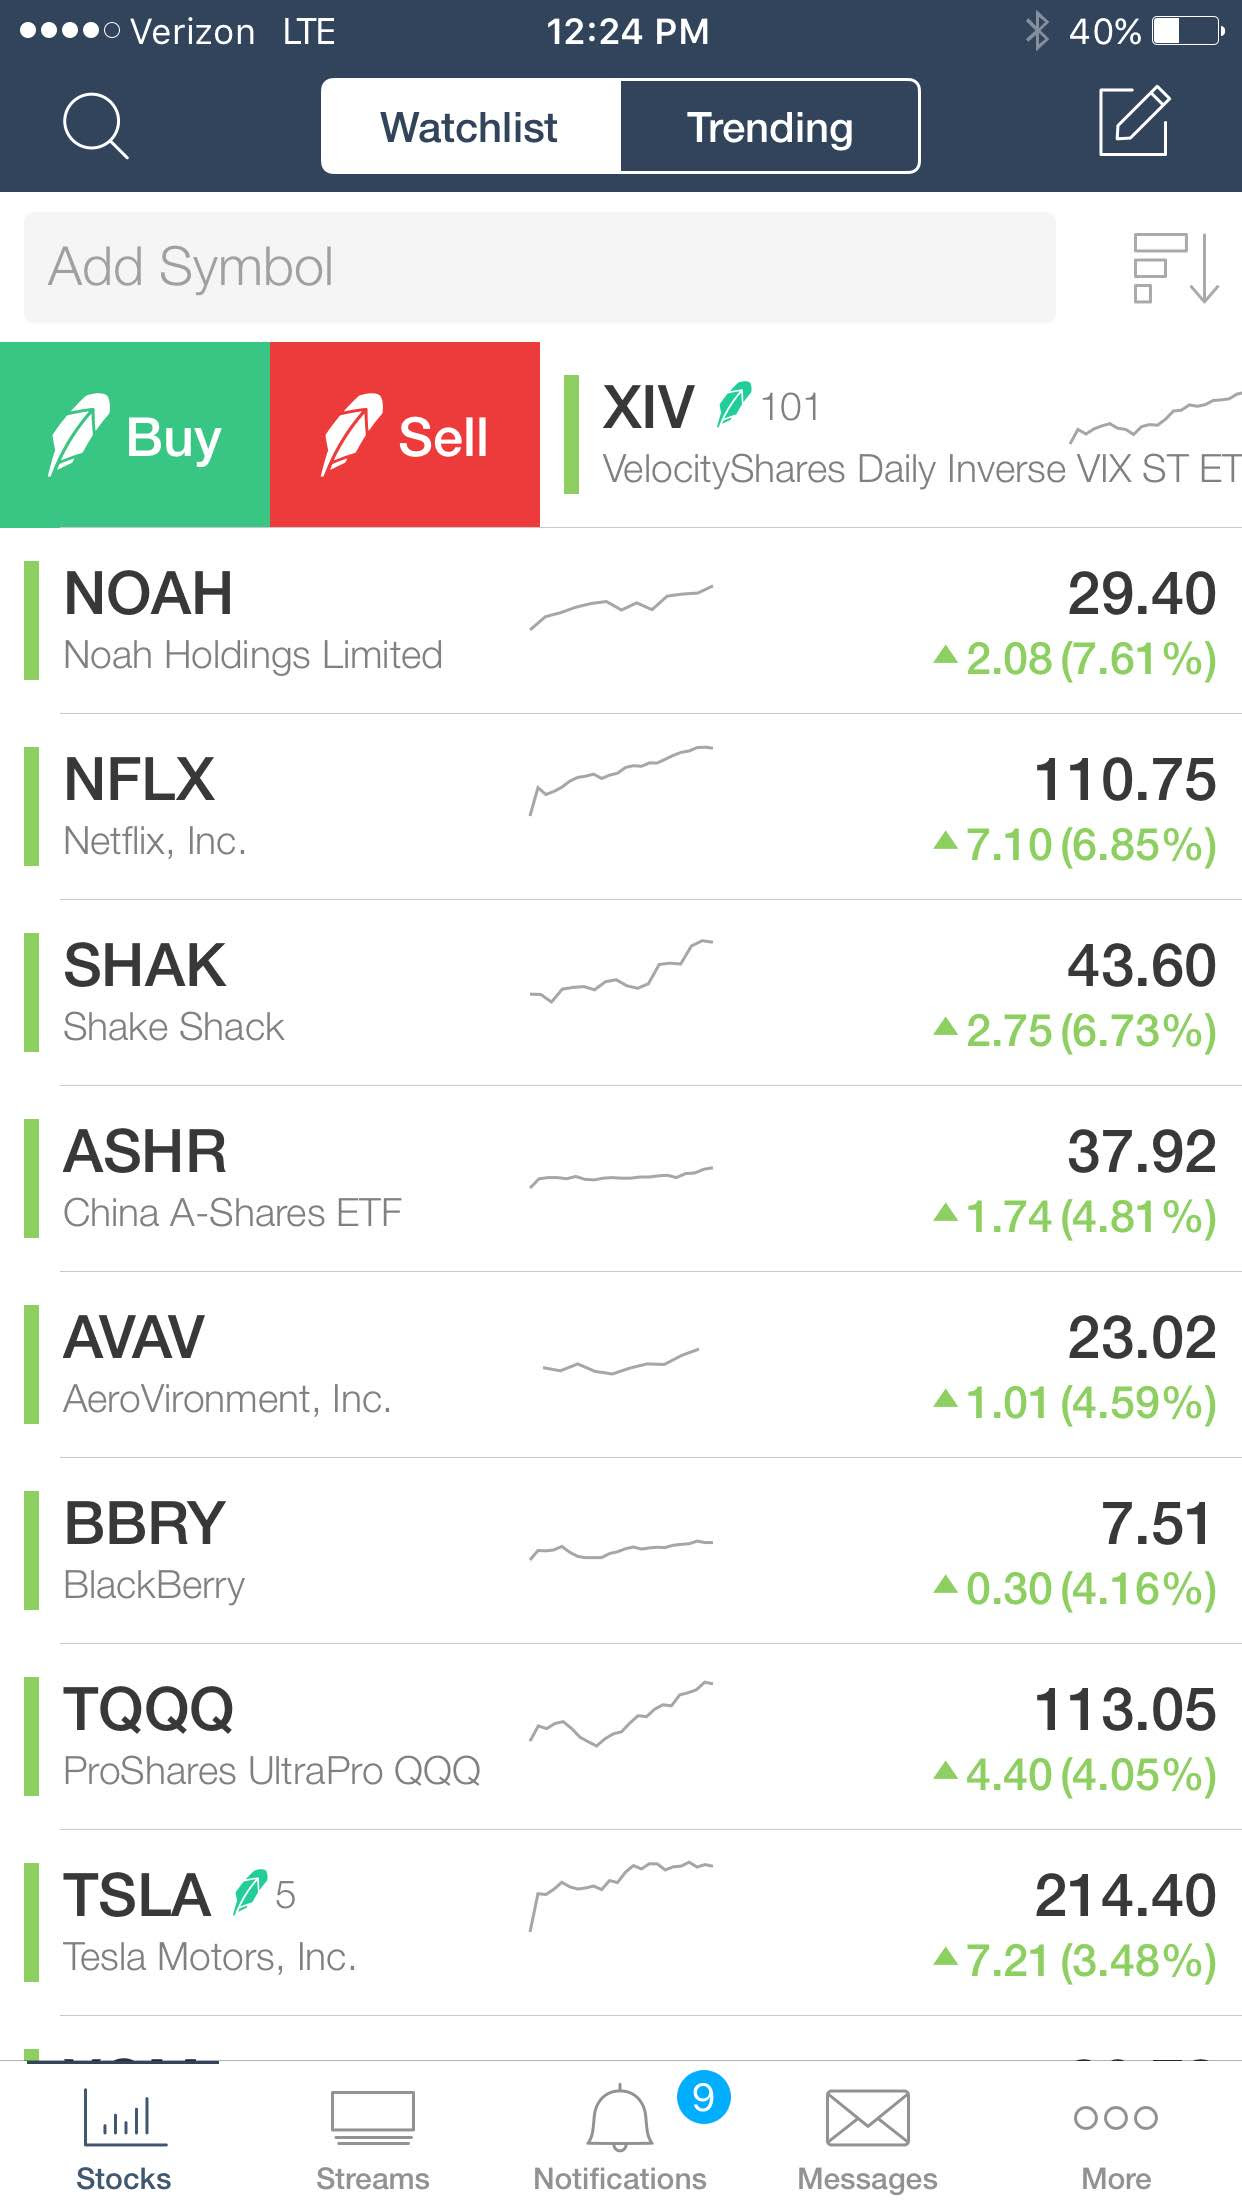 Stocktwits And Robinhood Teamed Up To Provide Social Trading To The Stocktwits Community Howard Lindzon